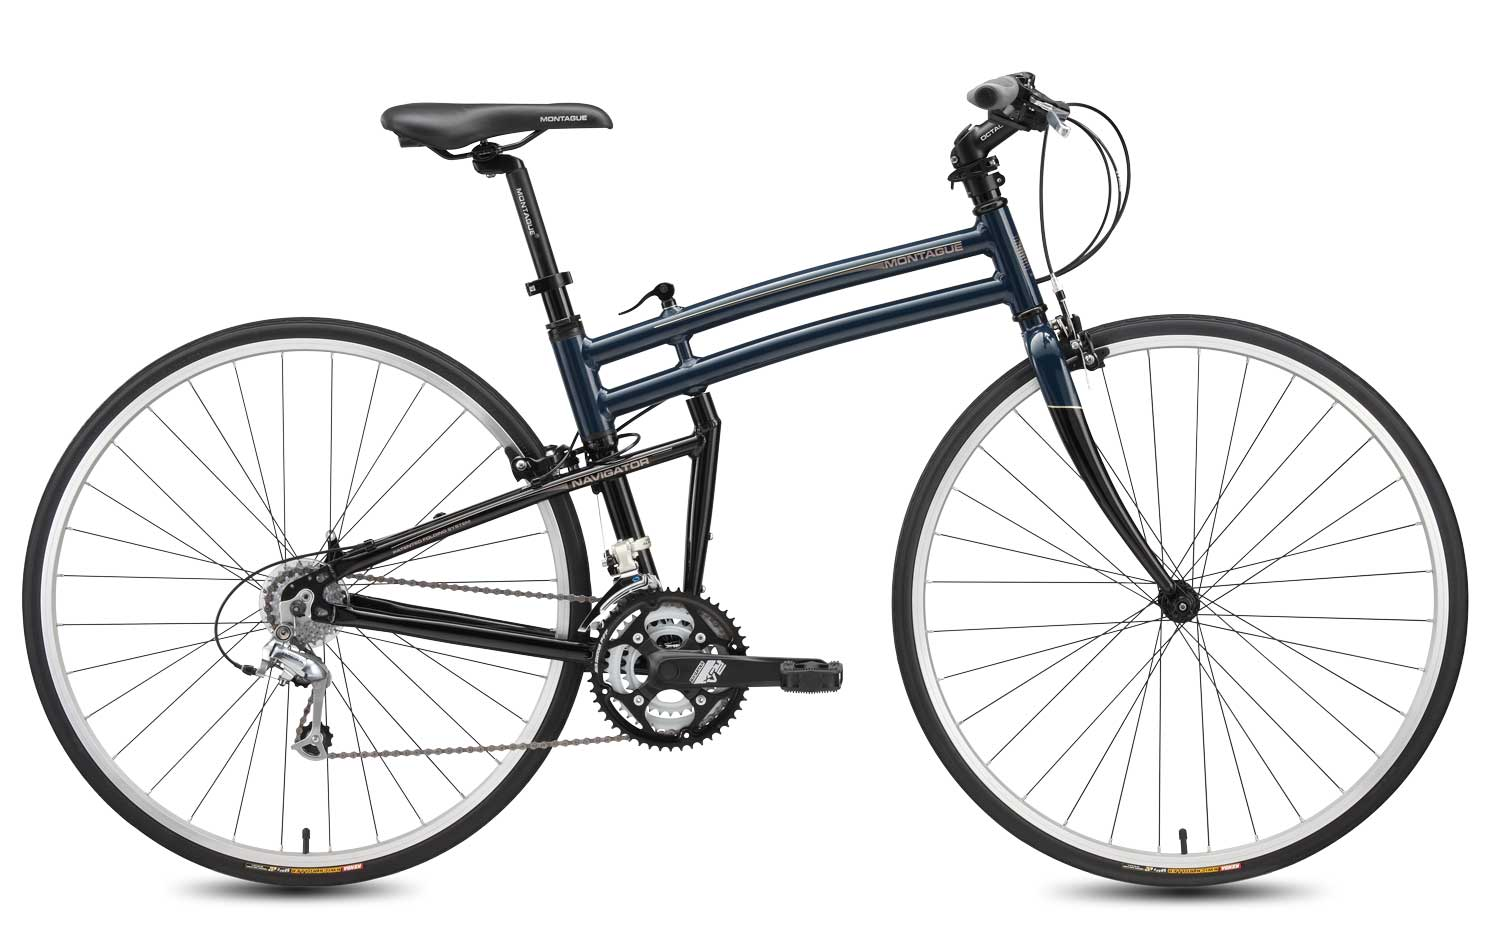 2010 Navigator folding bike open